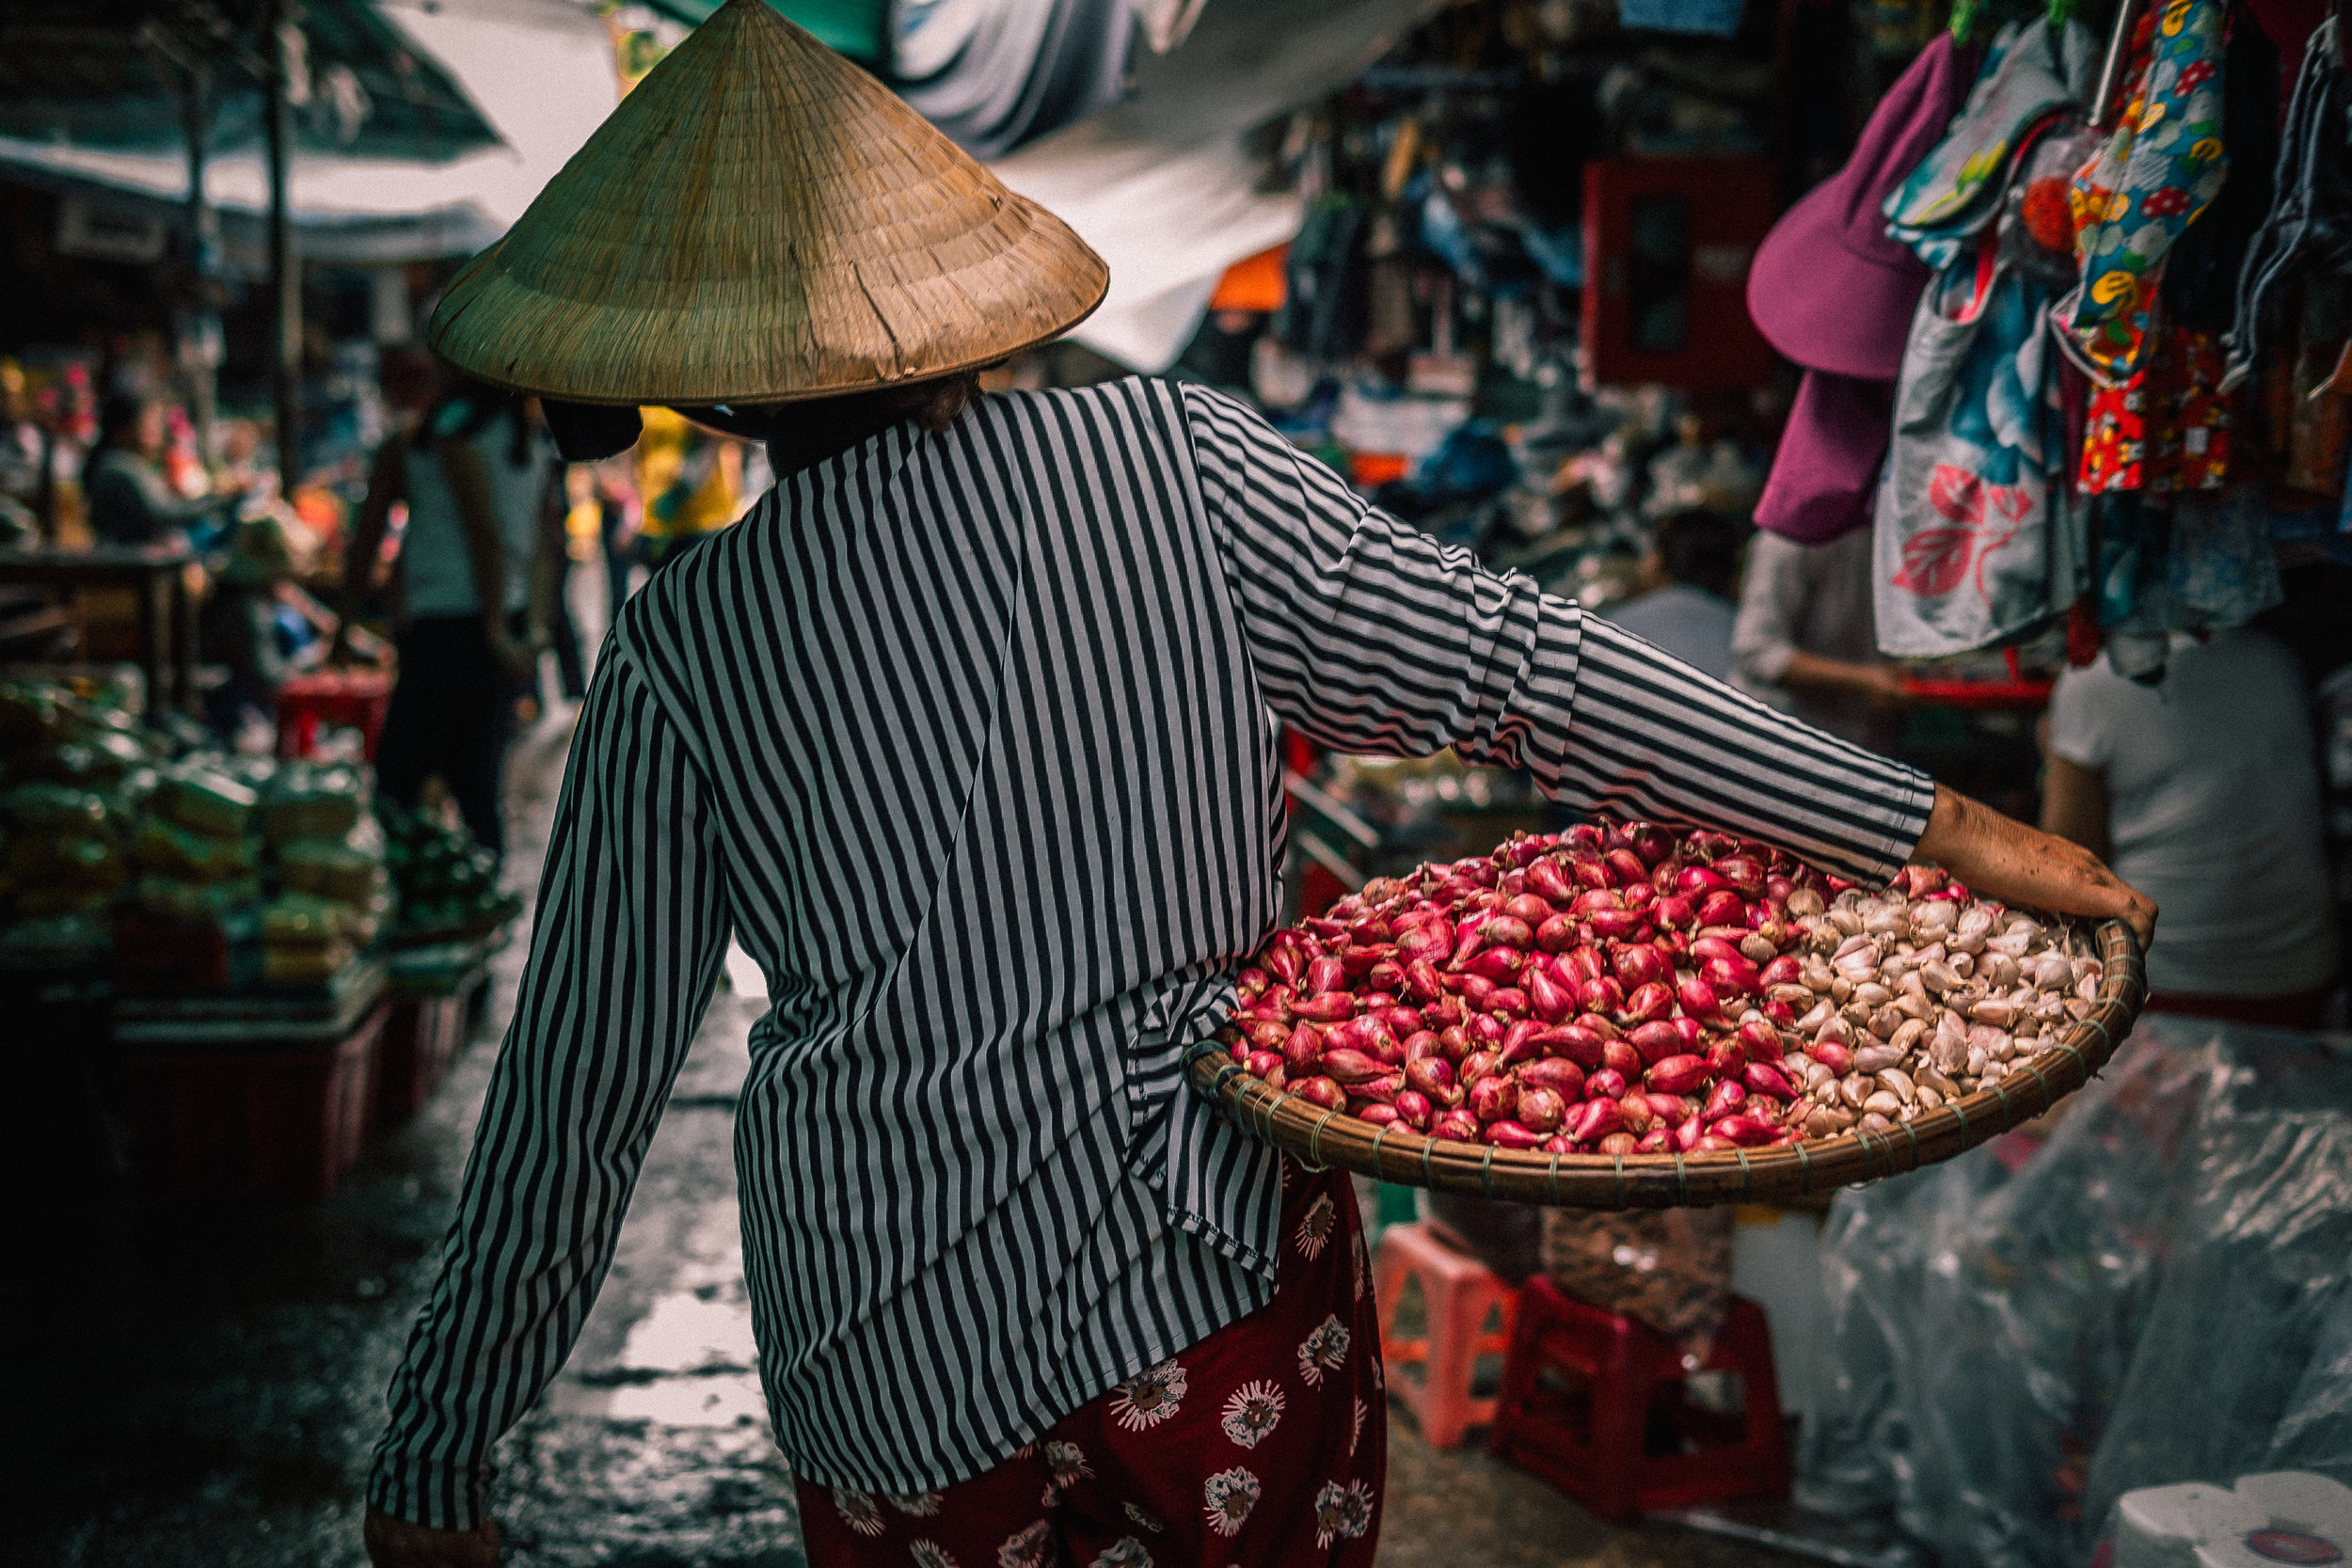 Taste of Vietnam - Satisfy your hunger for adventure on this authentic food exploration of Vietnam. Taste your way from Hanoi to Ho Chi Minh City and fill the eyes with amazing sights, the stomach with delicious food and the heart with unforgettable experiences.11 nights from $3,160pp* (NZD)Travel Period: Selected dates throughout 2019